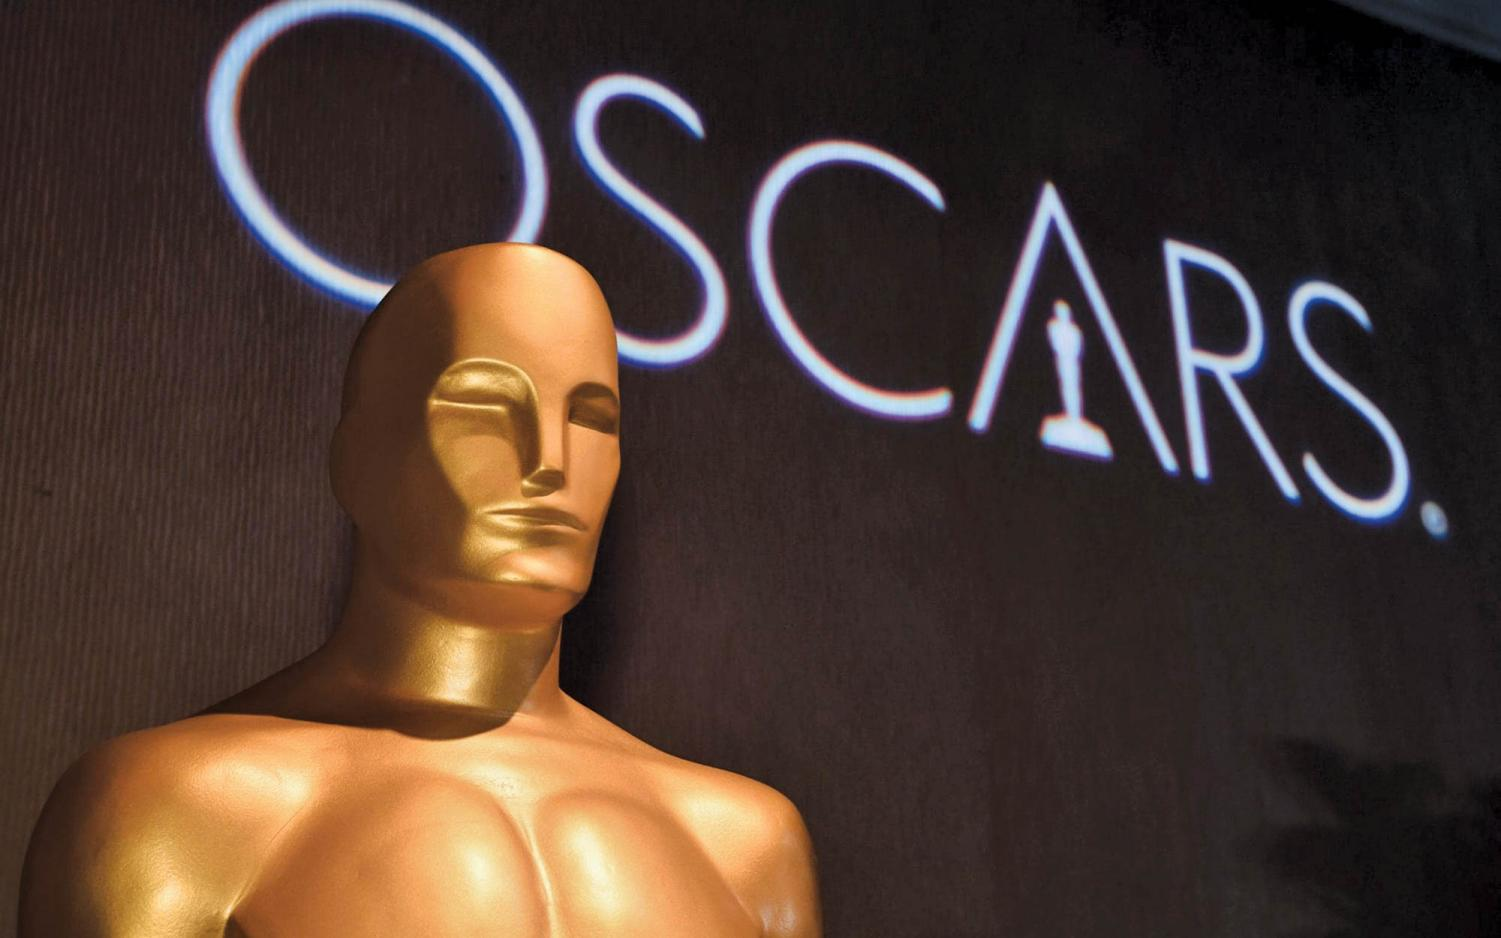 The 2019 Oscars garnered 29.6 million viewers.